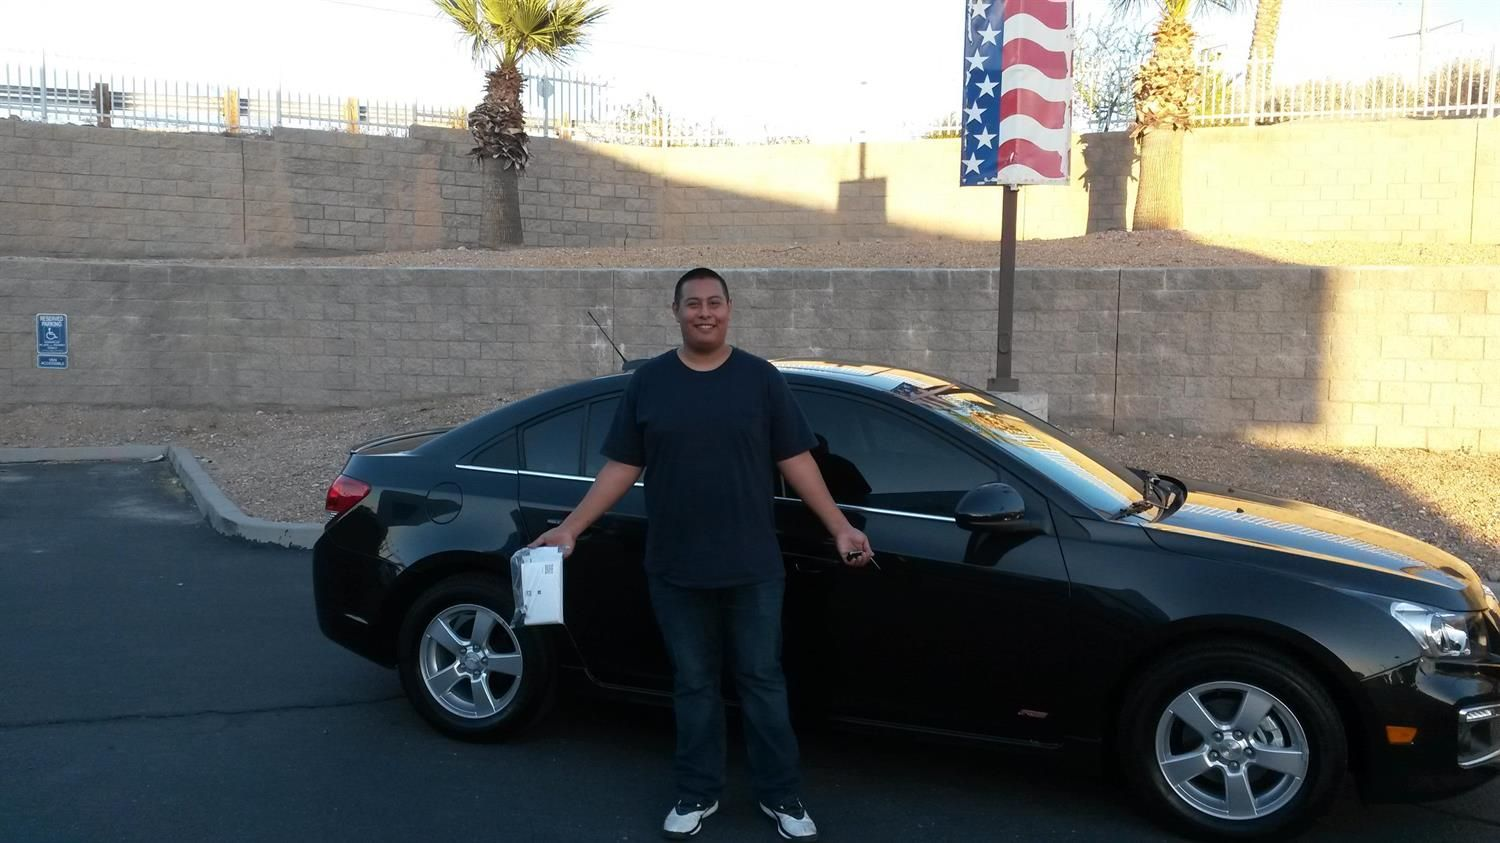 Armando S New 2016 Chevrolet Cruze Congratulations And Best Wishes From Findlay Motor Company And Bruce Chevrolet Cruze Congratulations And Best Wishes Cruze